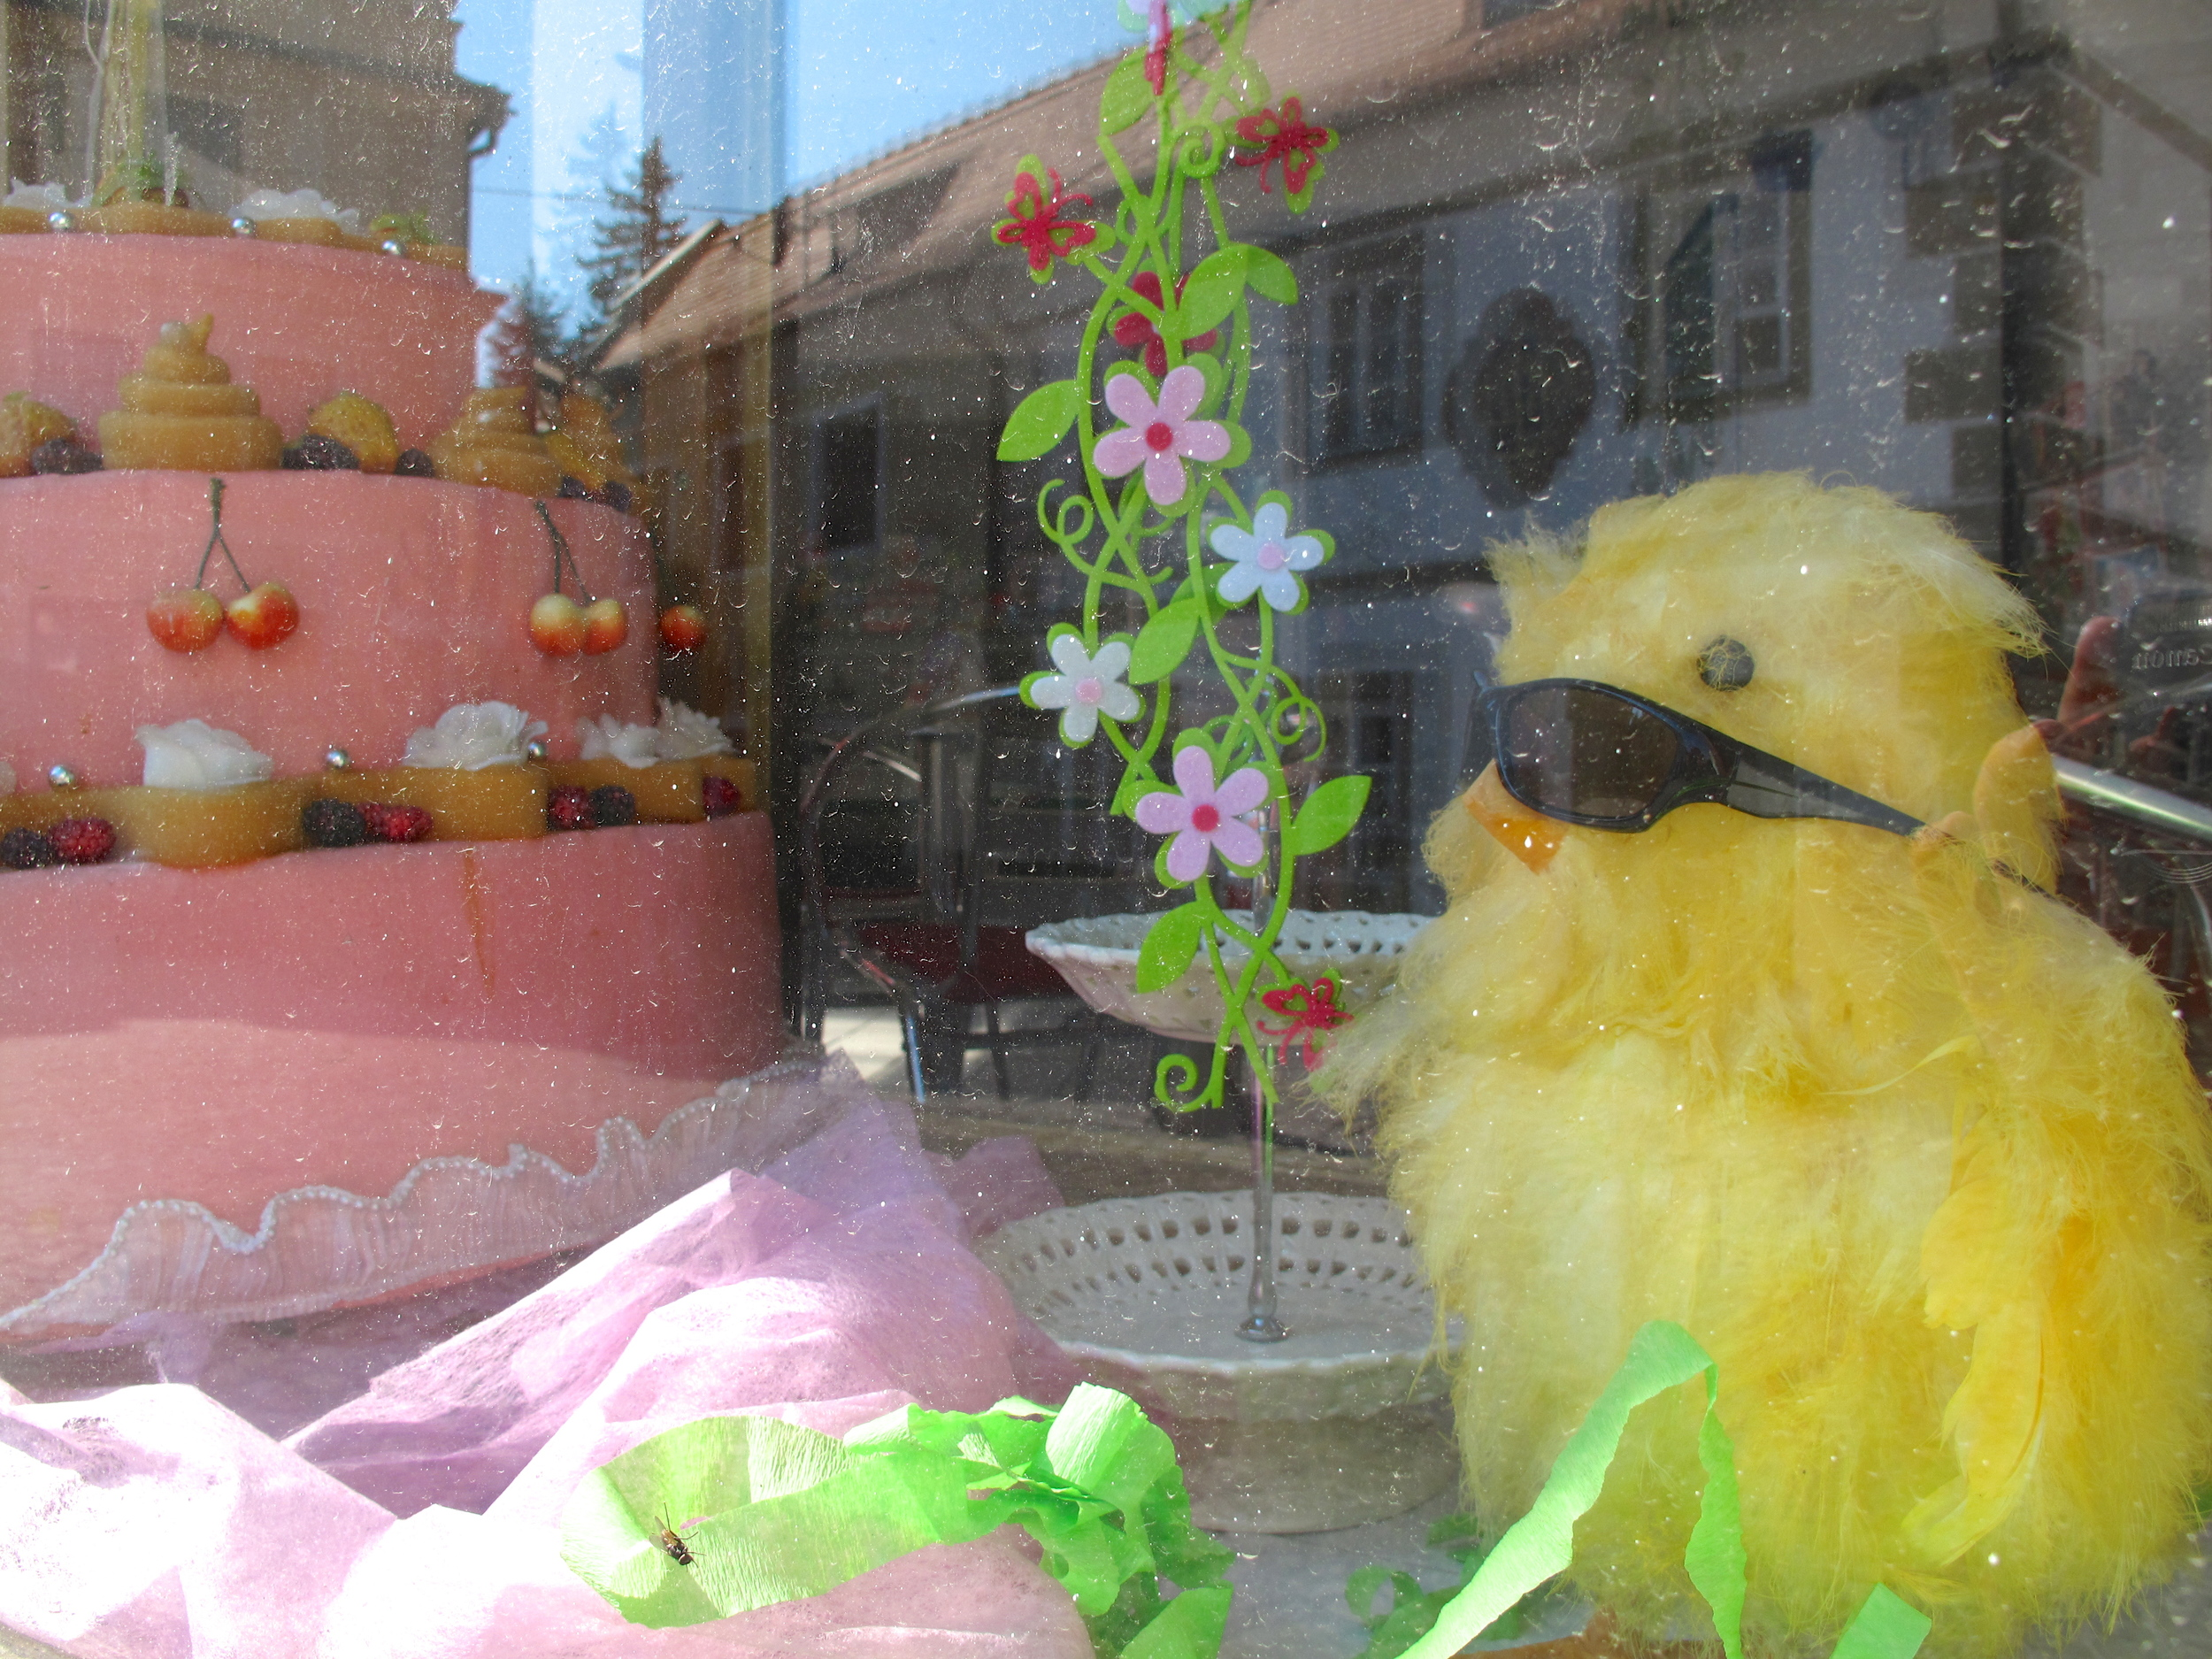 Odd window display in the Czech Republic - with a small chicken in sunglasses and a cake.